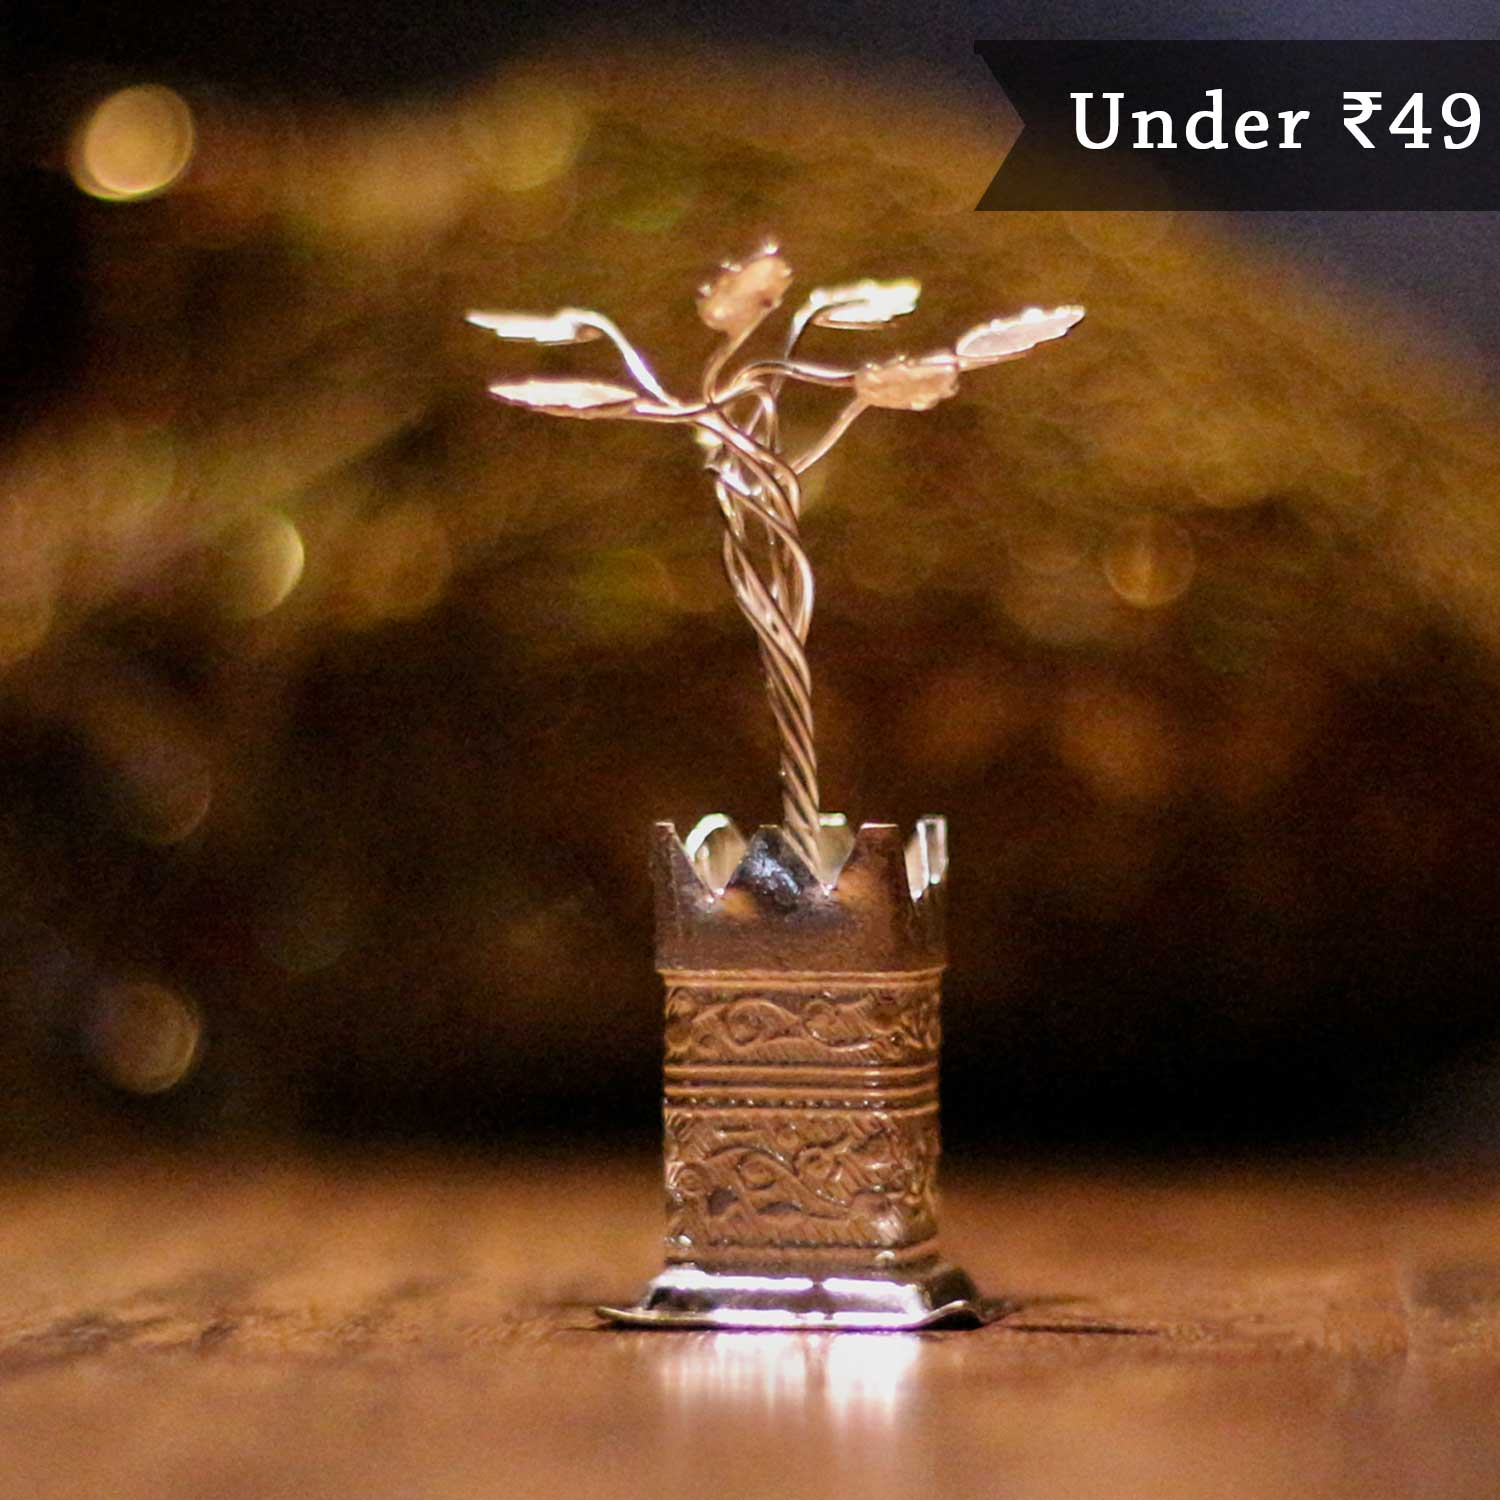 Online Gifts For Wedding: Return Gifts For Wedding, Birthday And More